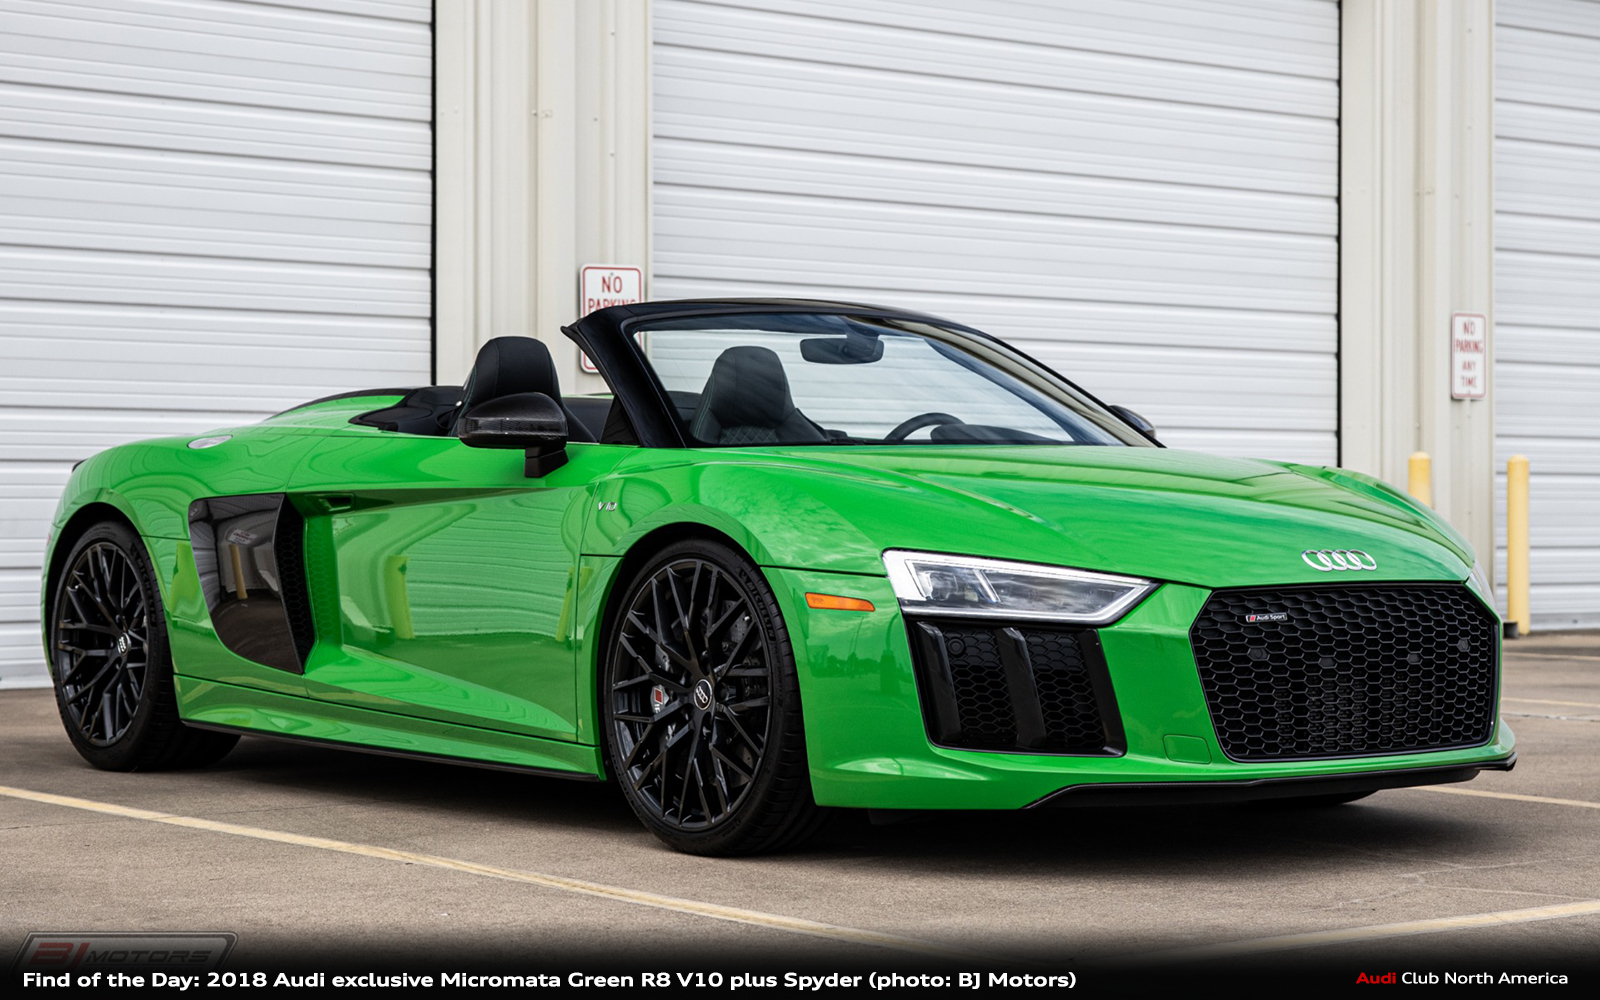 Find of the Day: 2018 Audi exclusive Micromata Green R8 V10 plus Spyder